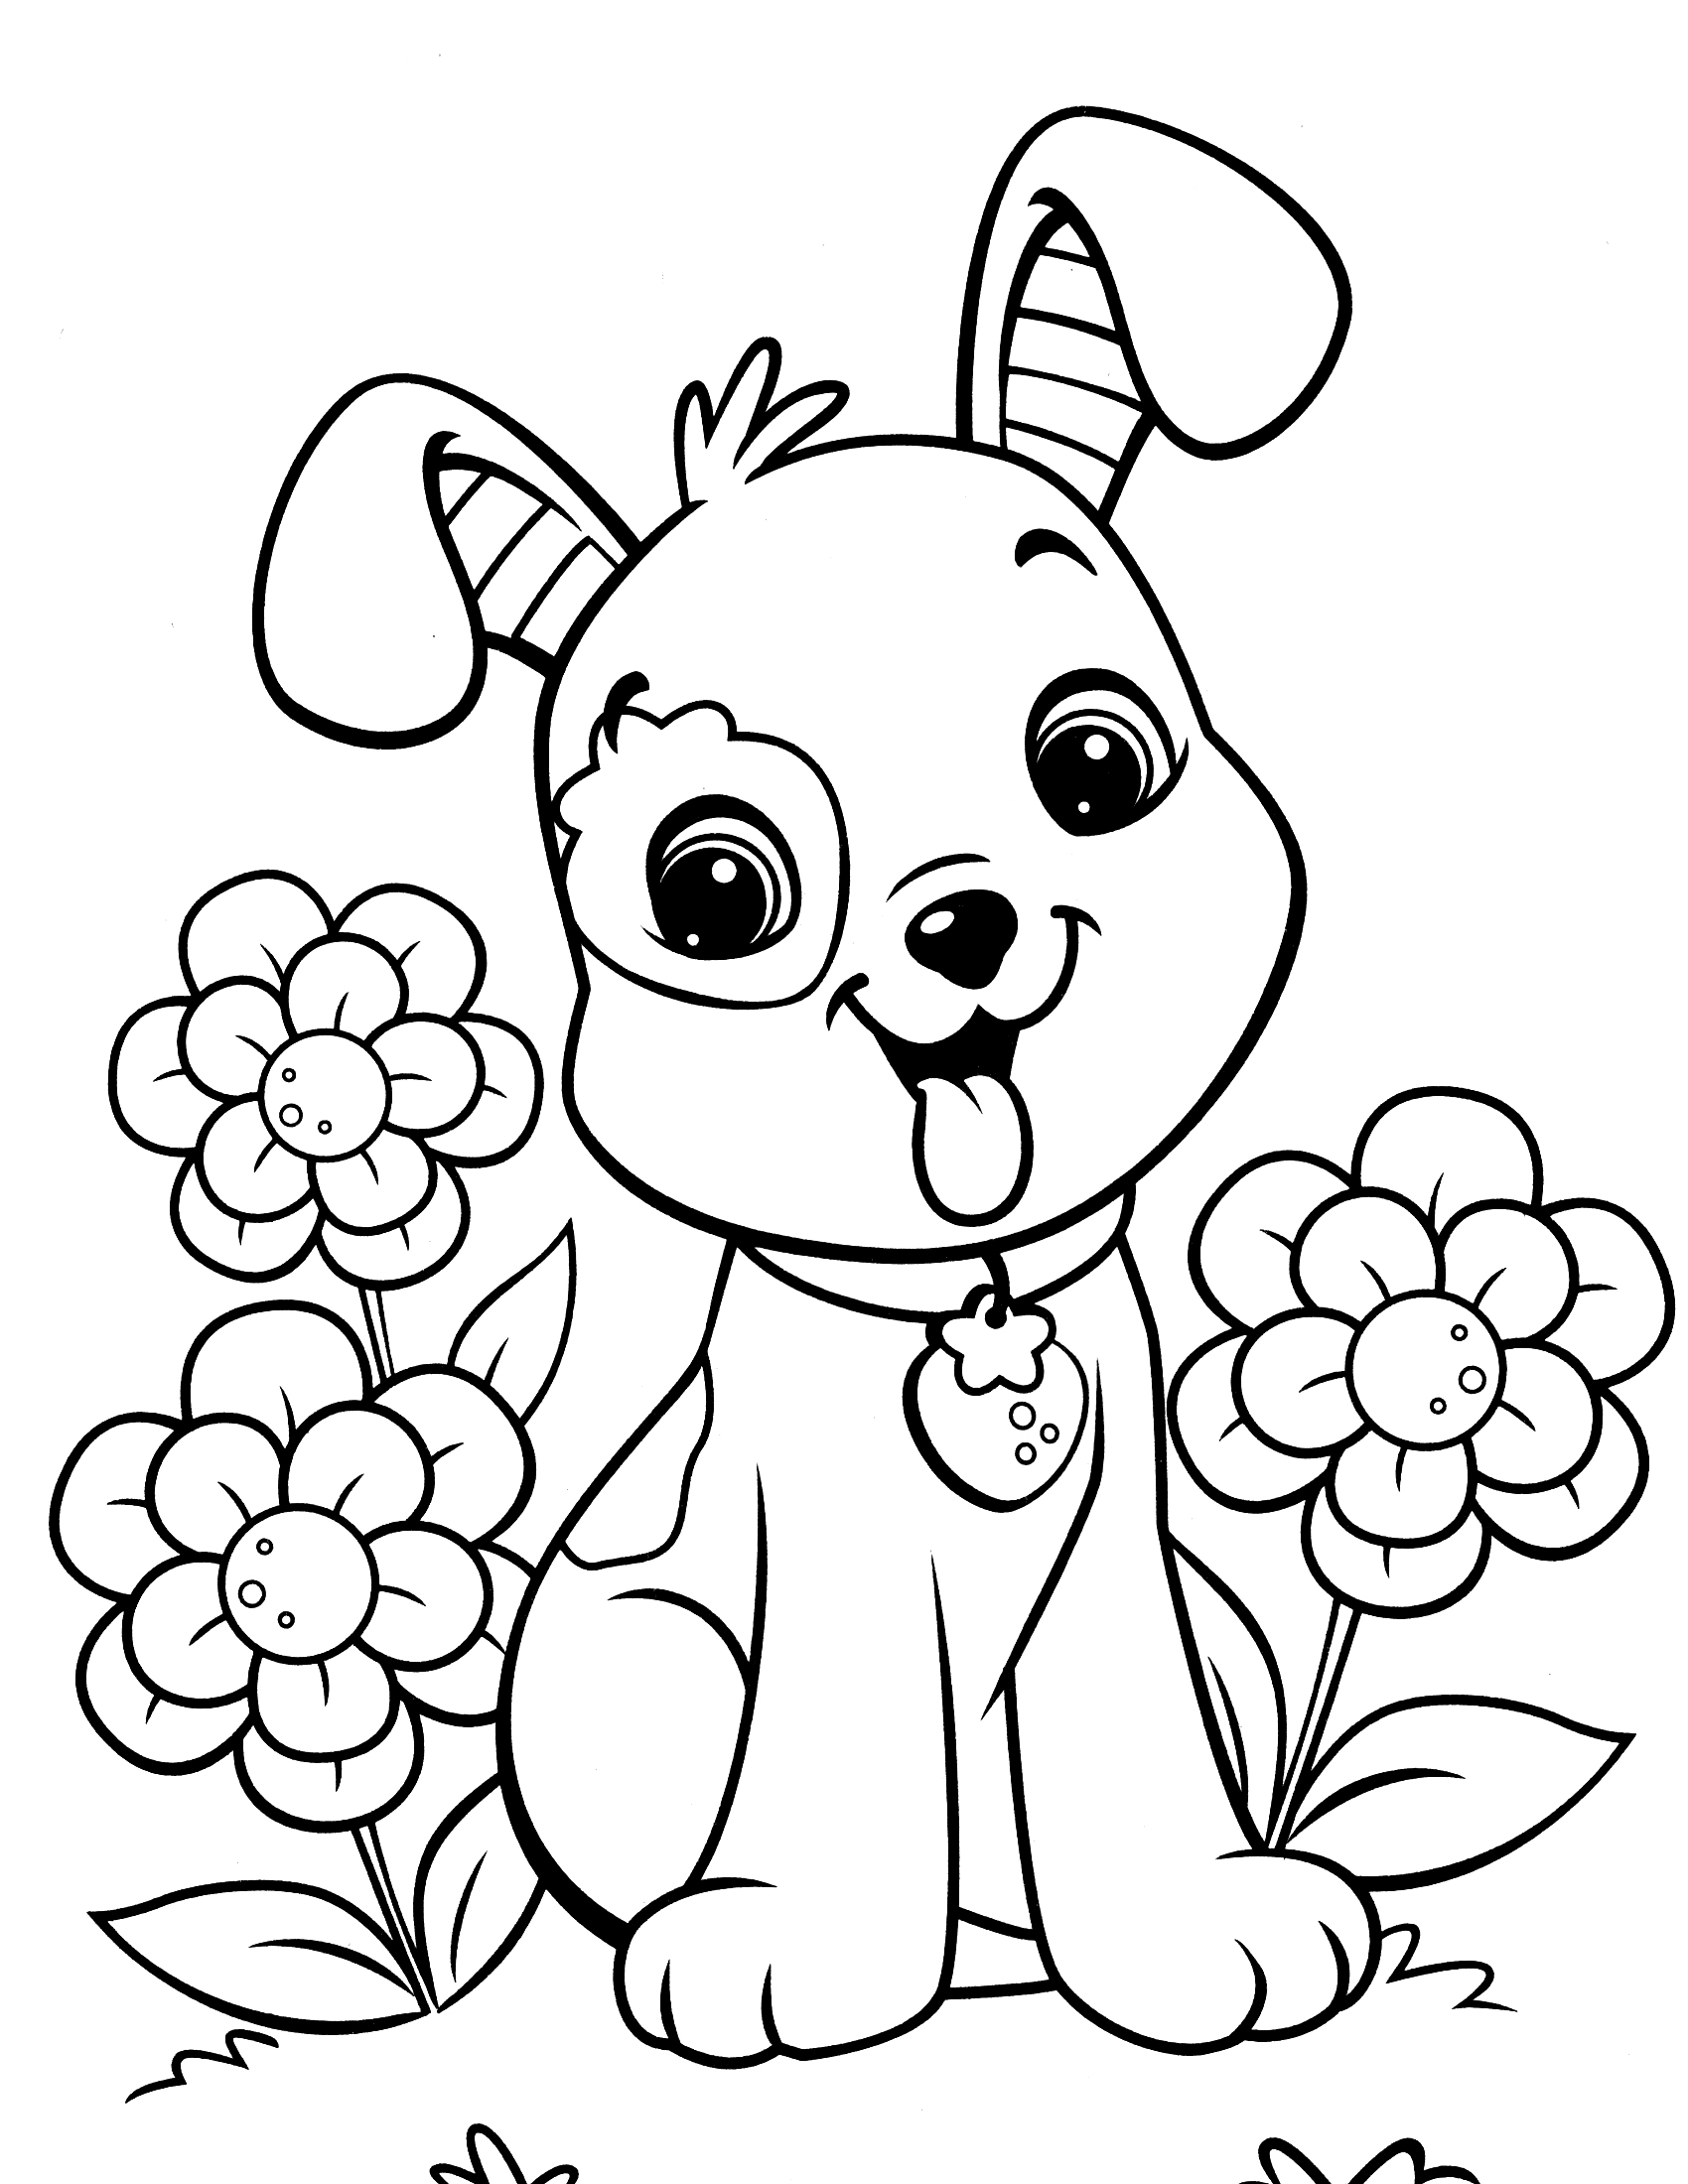 1700x2200 Instructive Coloring Pages Of Cute Dogs And Puppies Printa